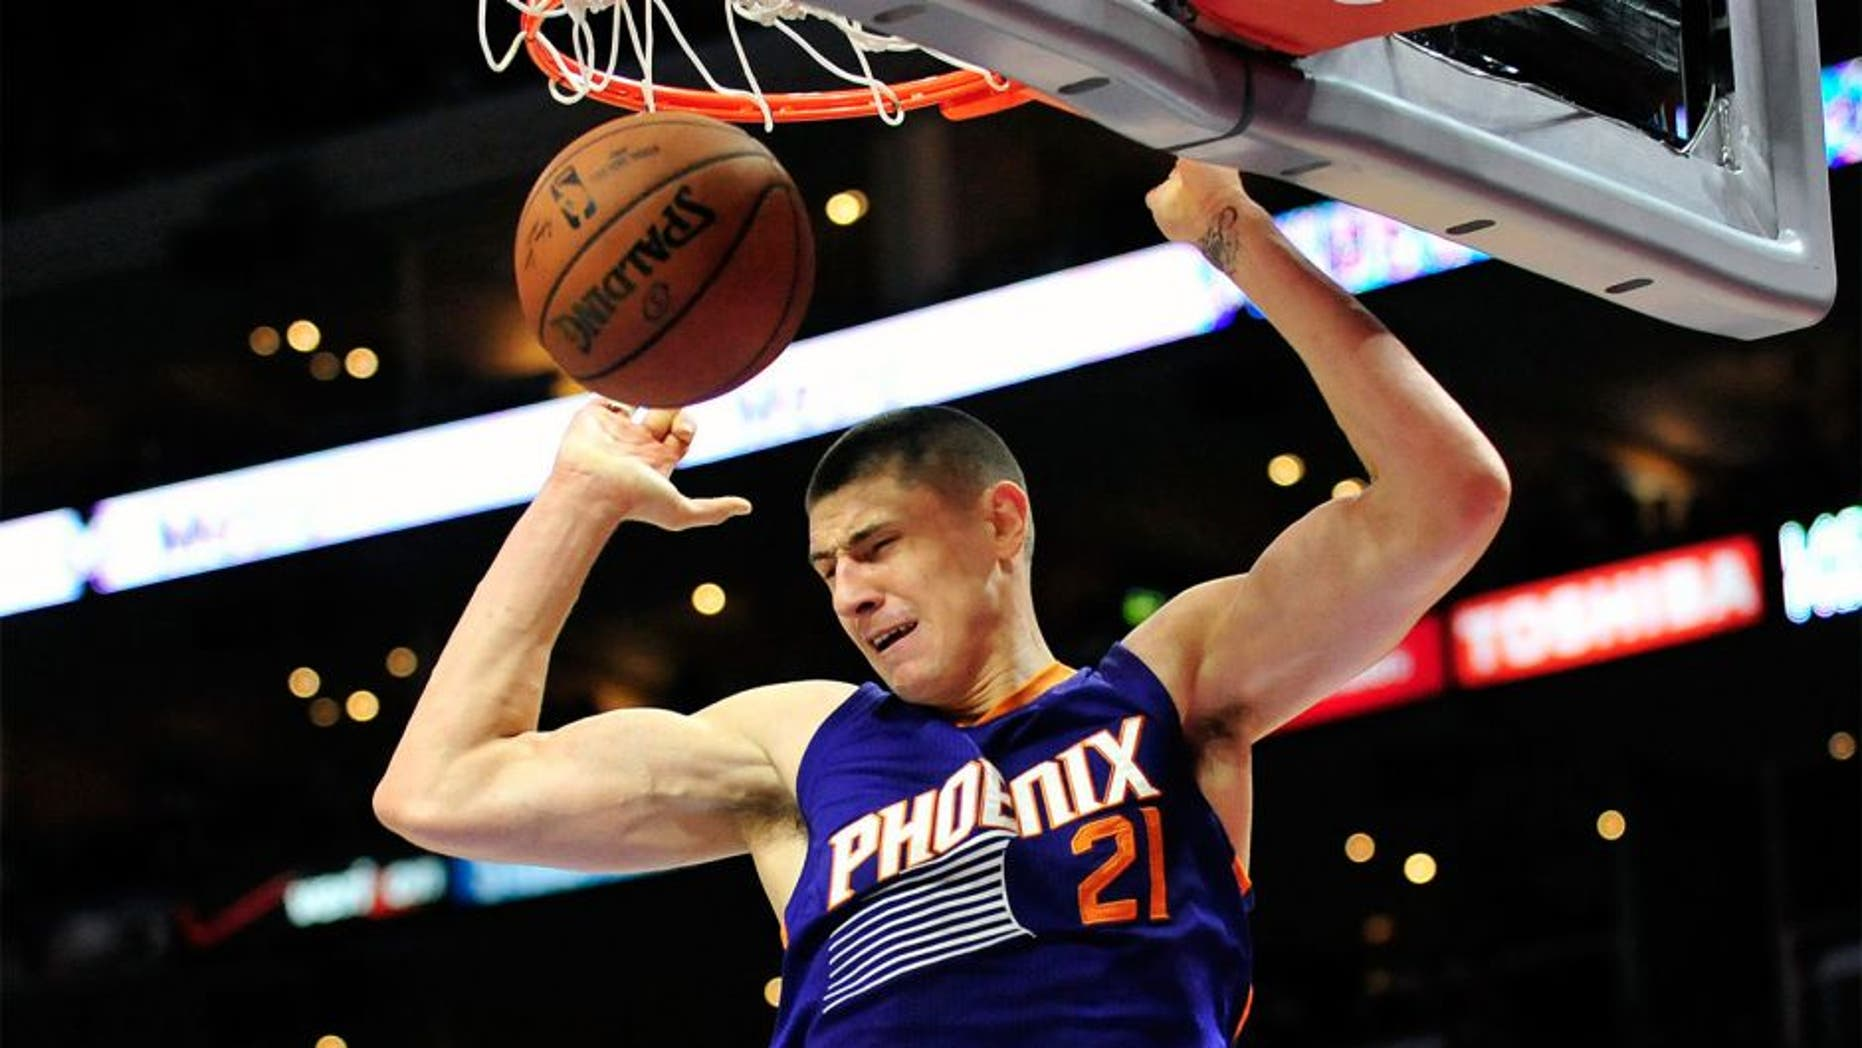 November 15, 2014; Los Angeles, CA, USA; Phoenix Suns center Alex Len (21) dunks to score a basket against the Los Angeles Clippers during the first half at Staples Center. Mandatory Credit: Gary A. Vasquez-USA TODAY Sports